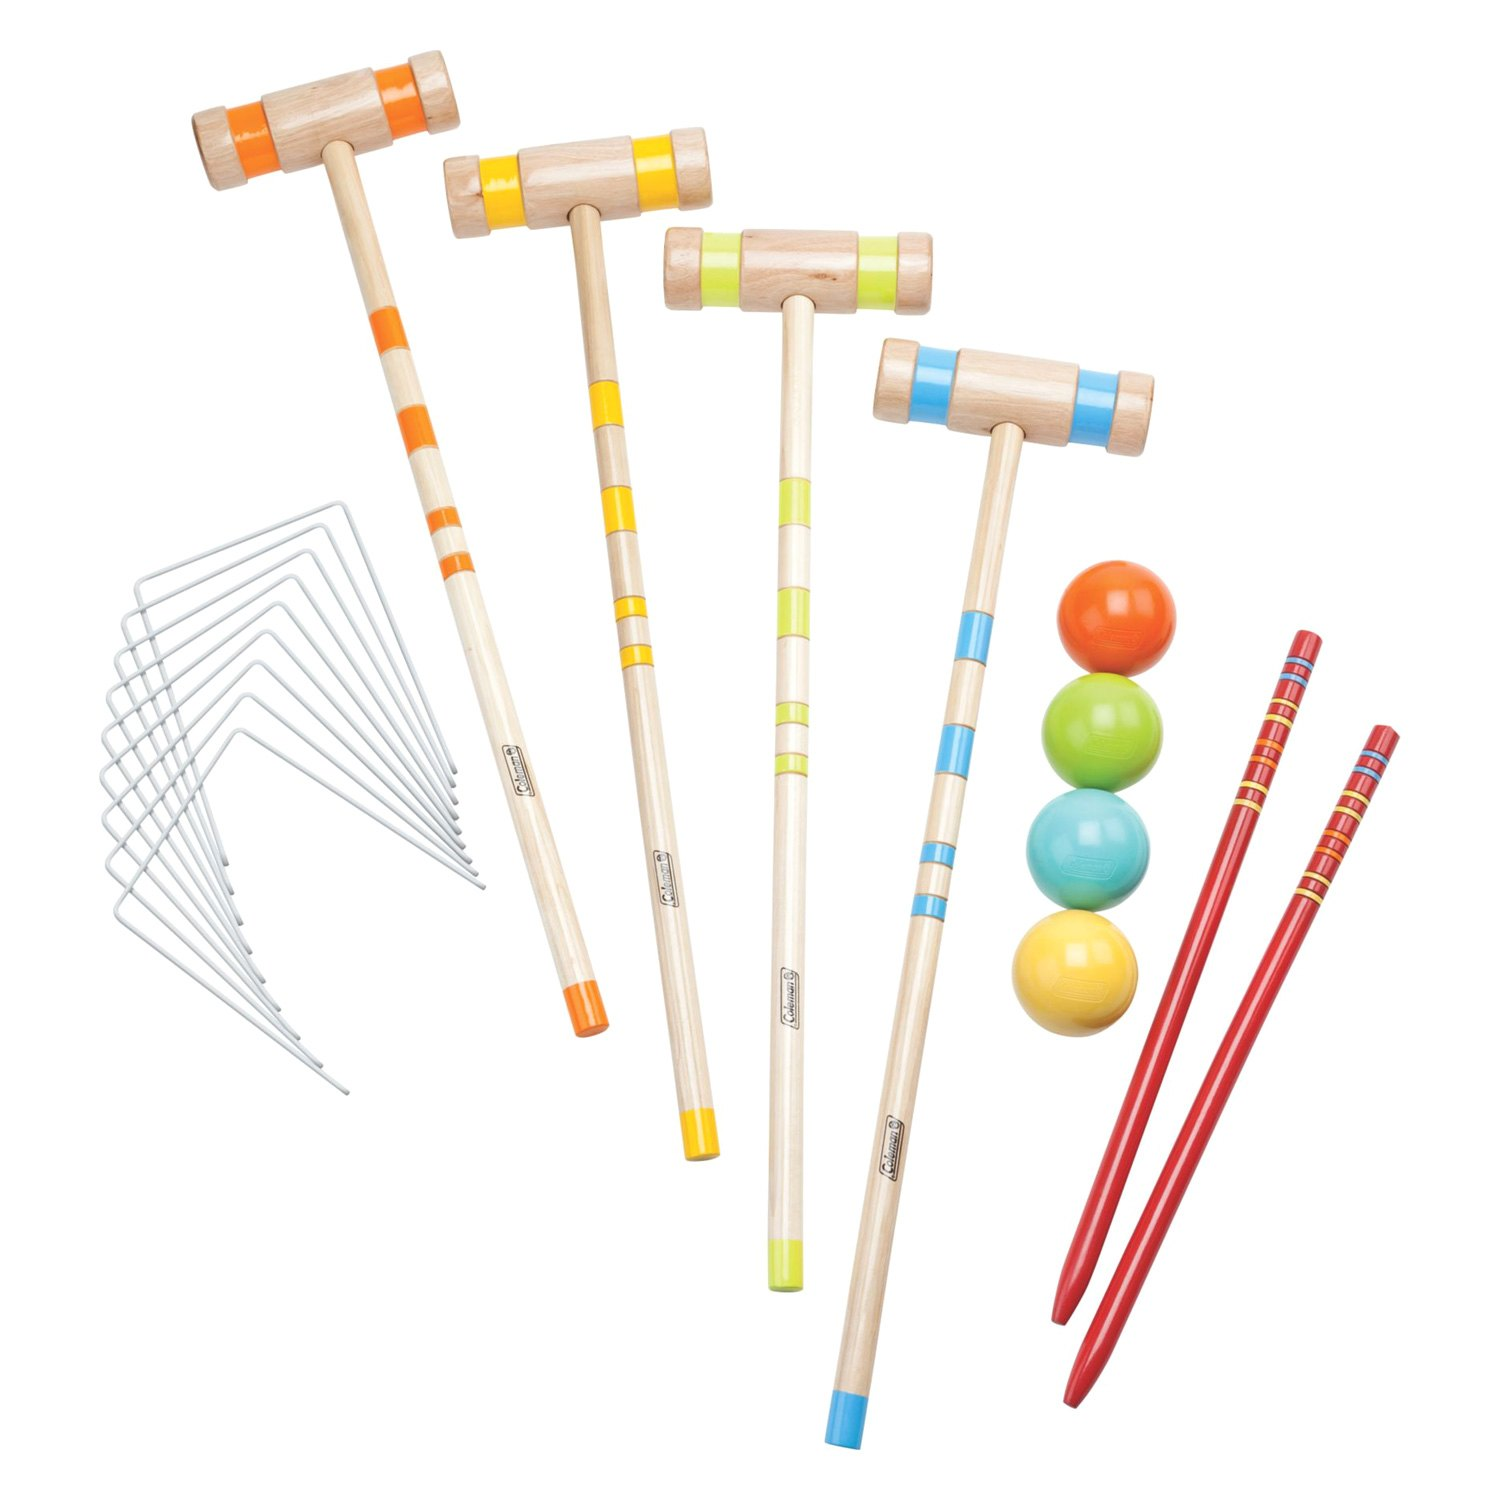 Croquet Game : Coleman? 2000012471 - Croquet Sport Outdoor Game Set